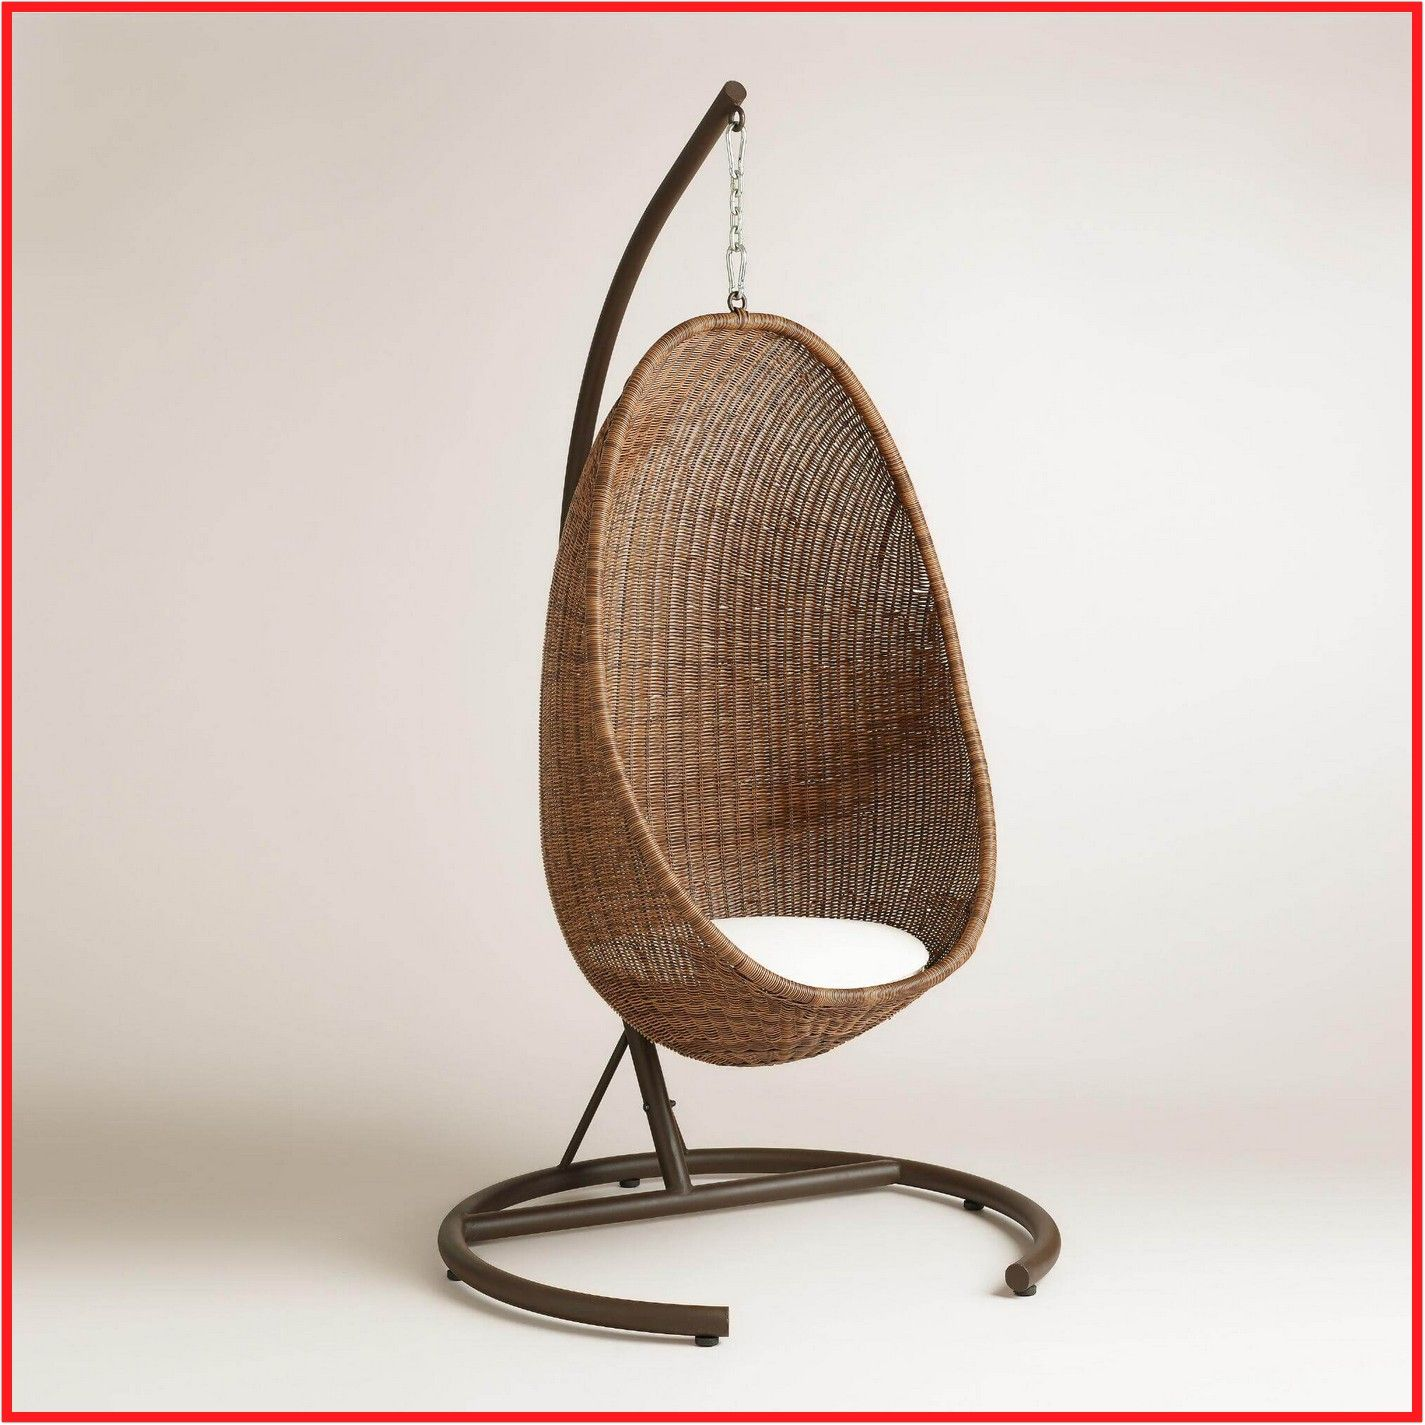 34 reference of hanging egg chair price in pakistan in